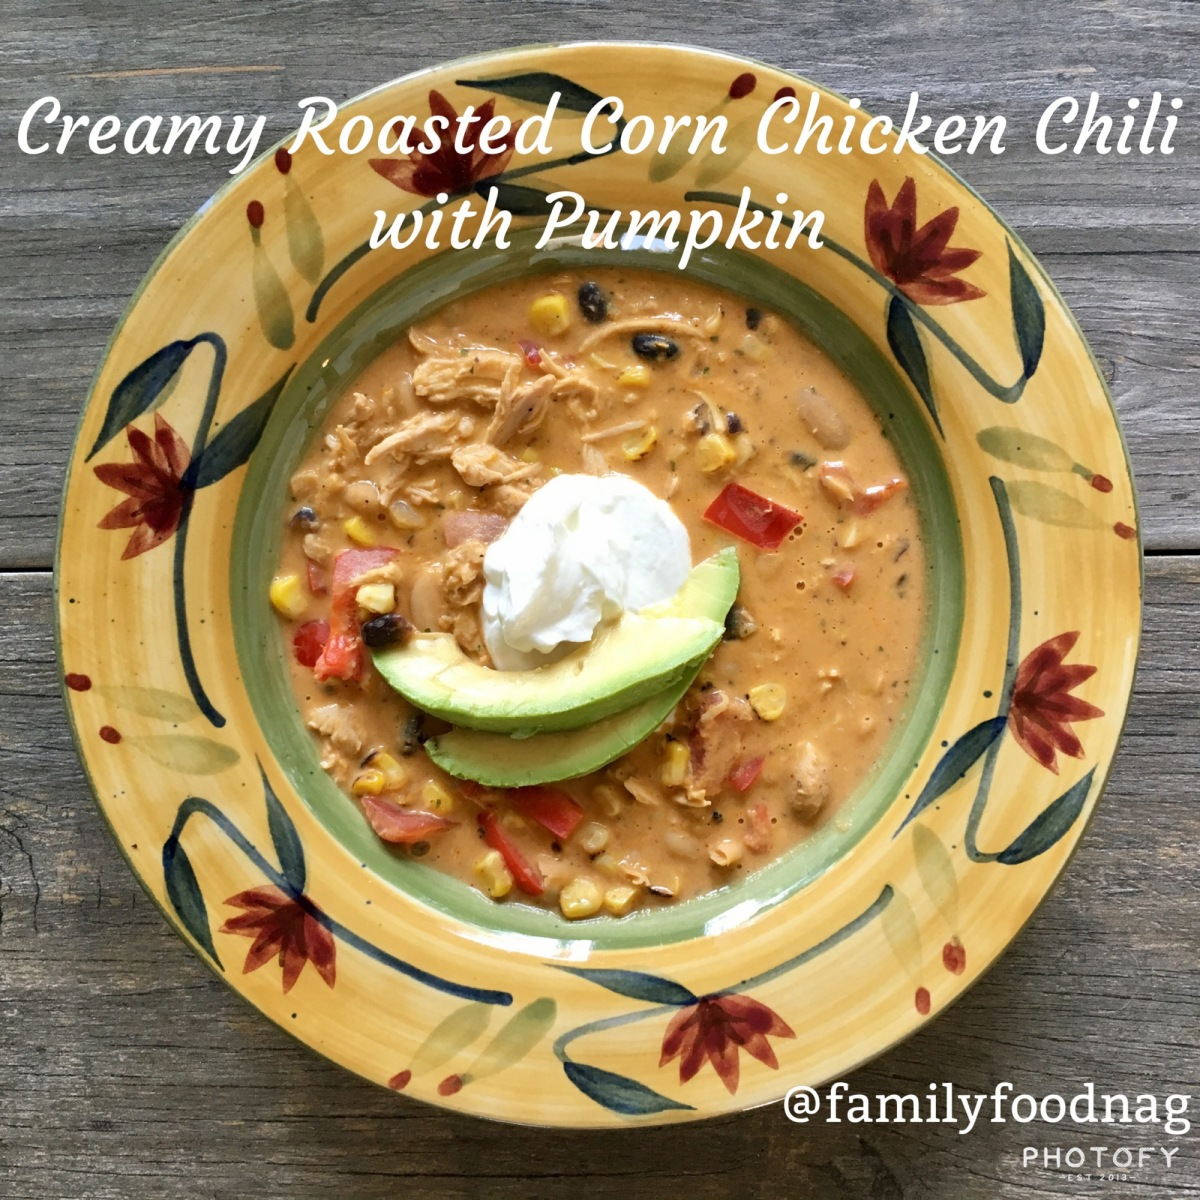 Gameday Eats: Creamy Roasted Corn Chicken Chili with Pumpkin